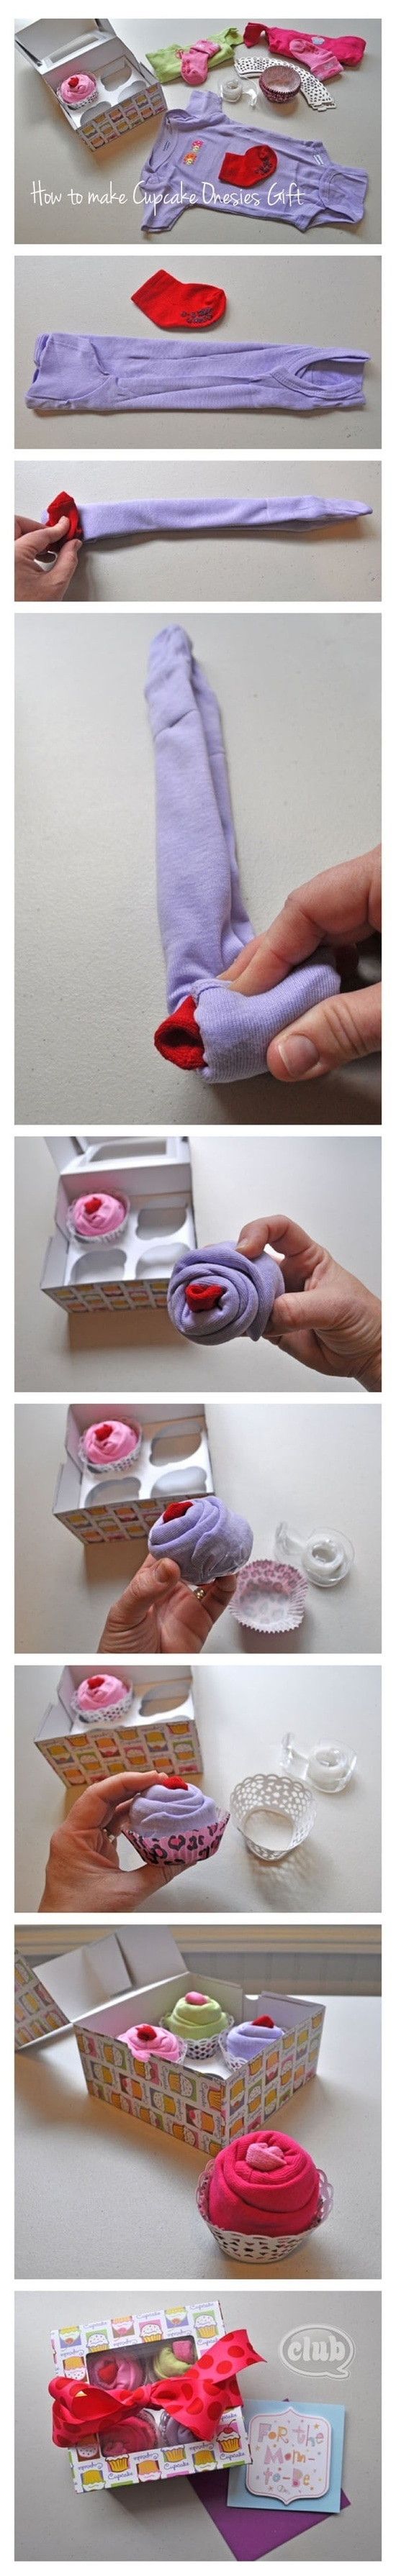 Pinterest Baby Gift Tutorial